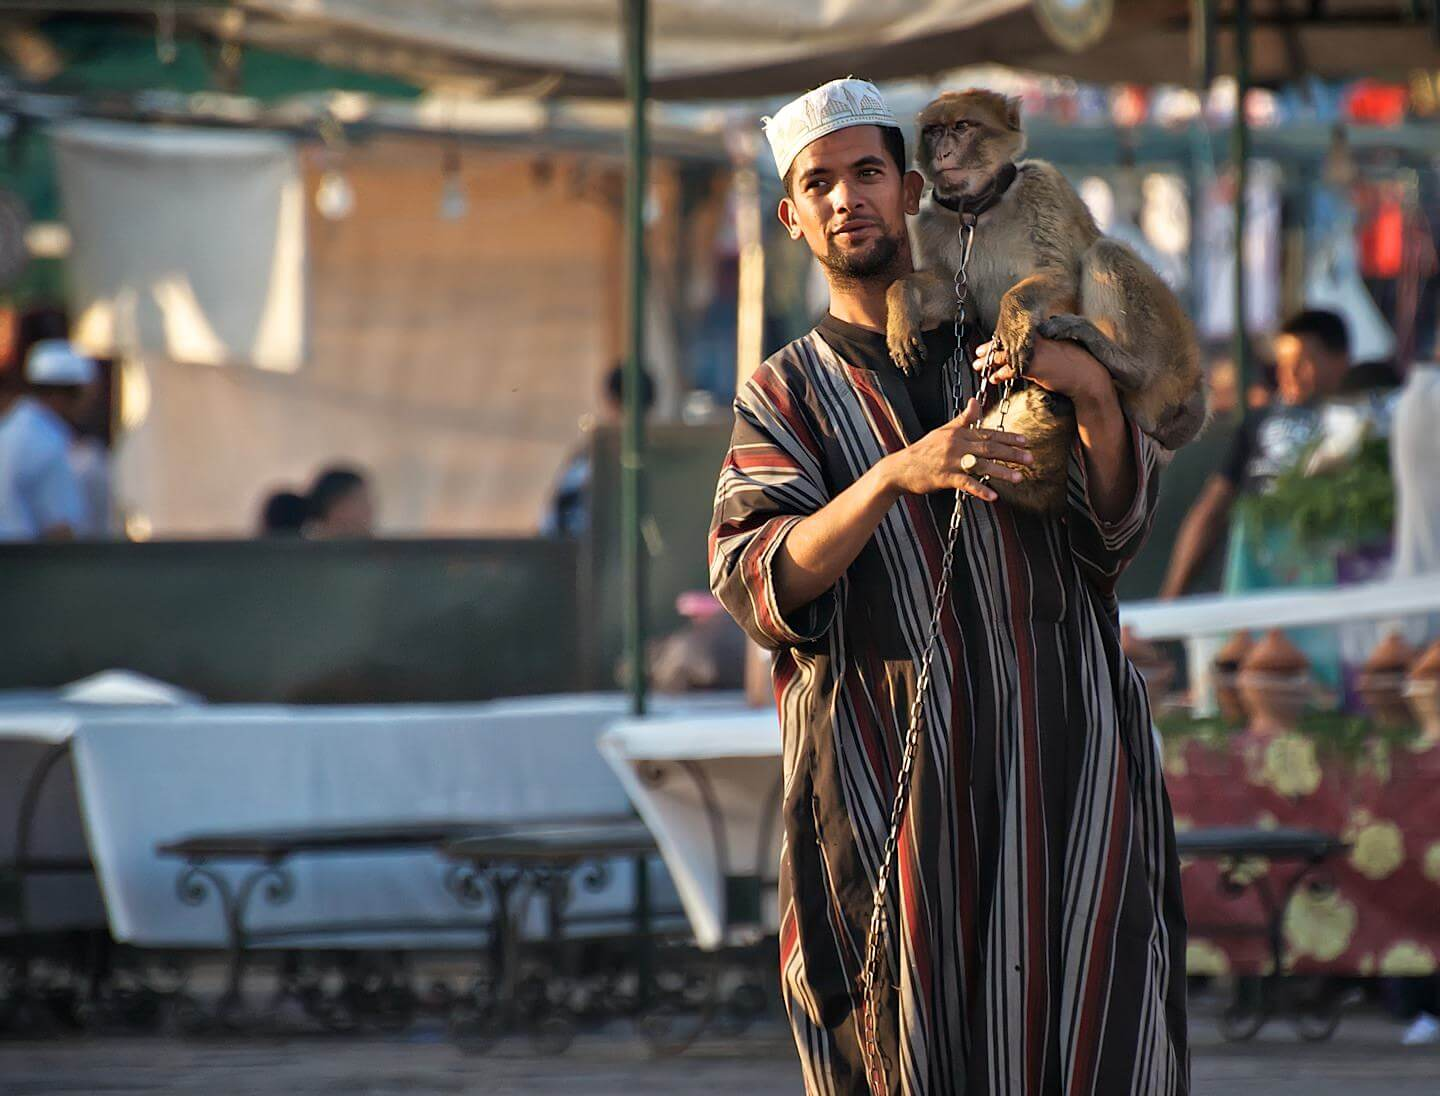 Moroccan man in djellaba with a monkey